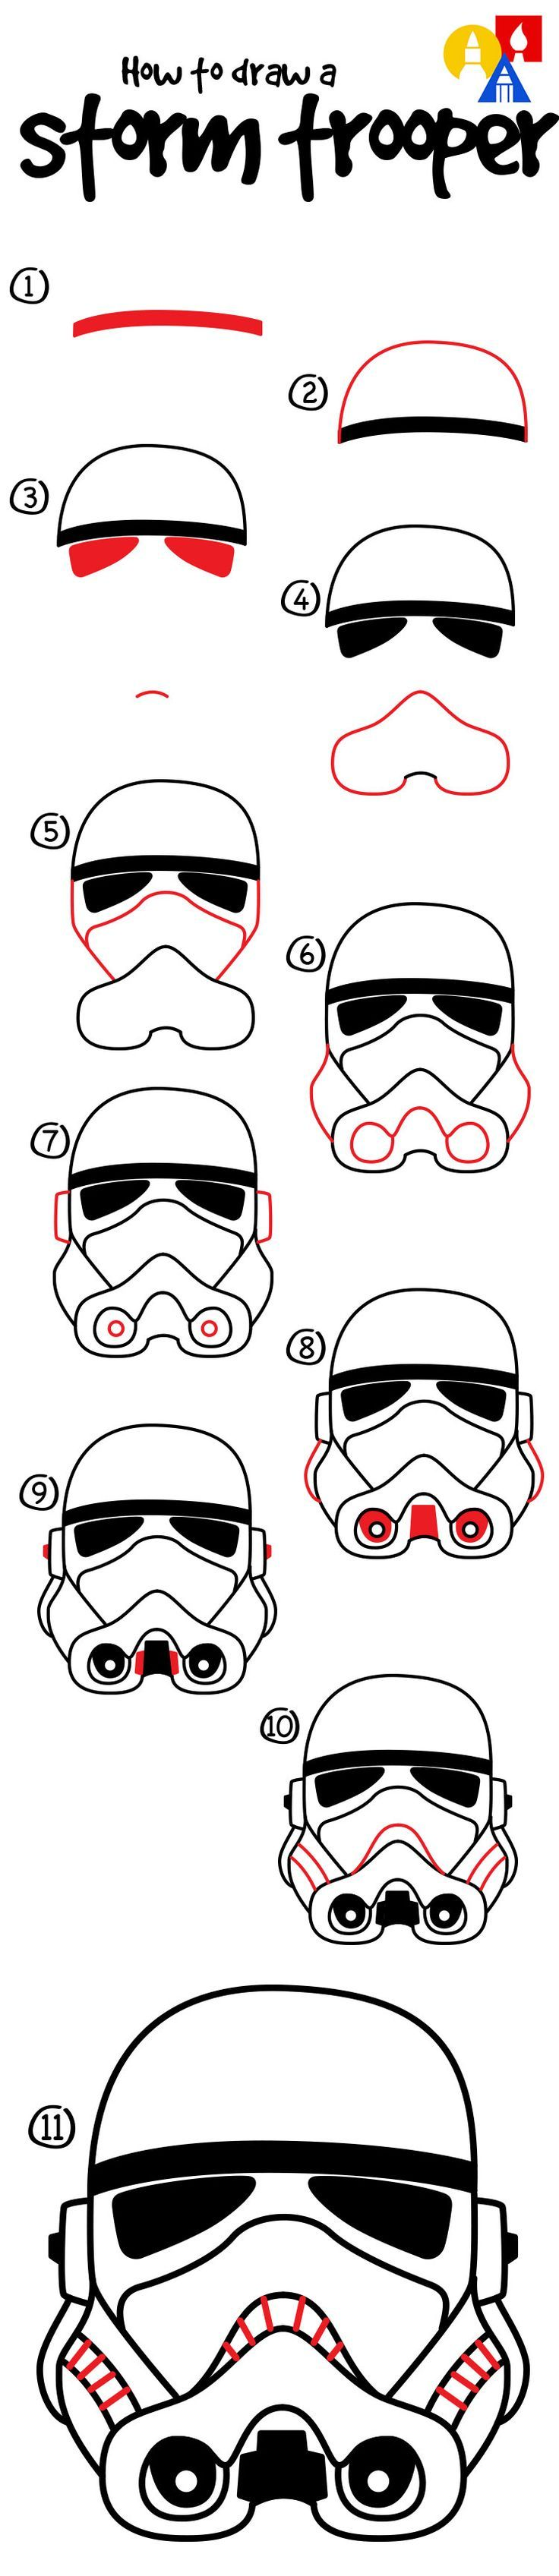 How To Draw A Stormtrooper Helmet  Art For Kids Hub